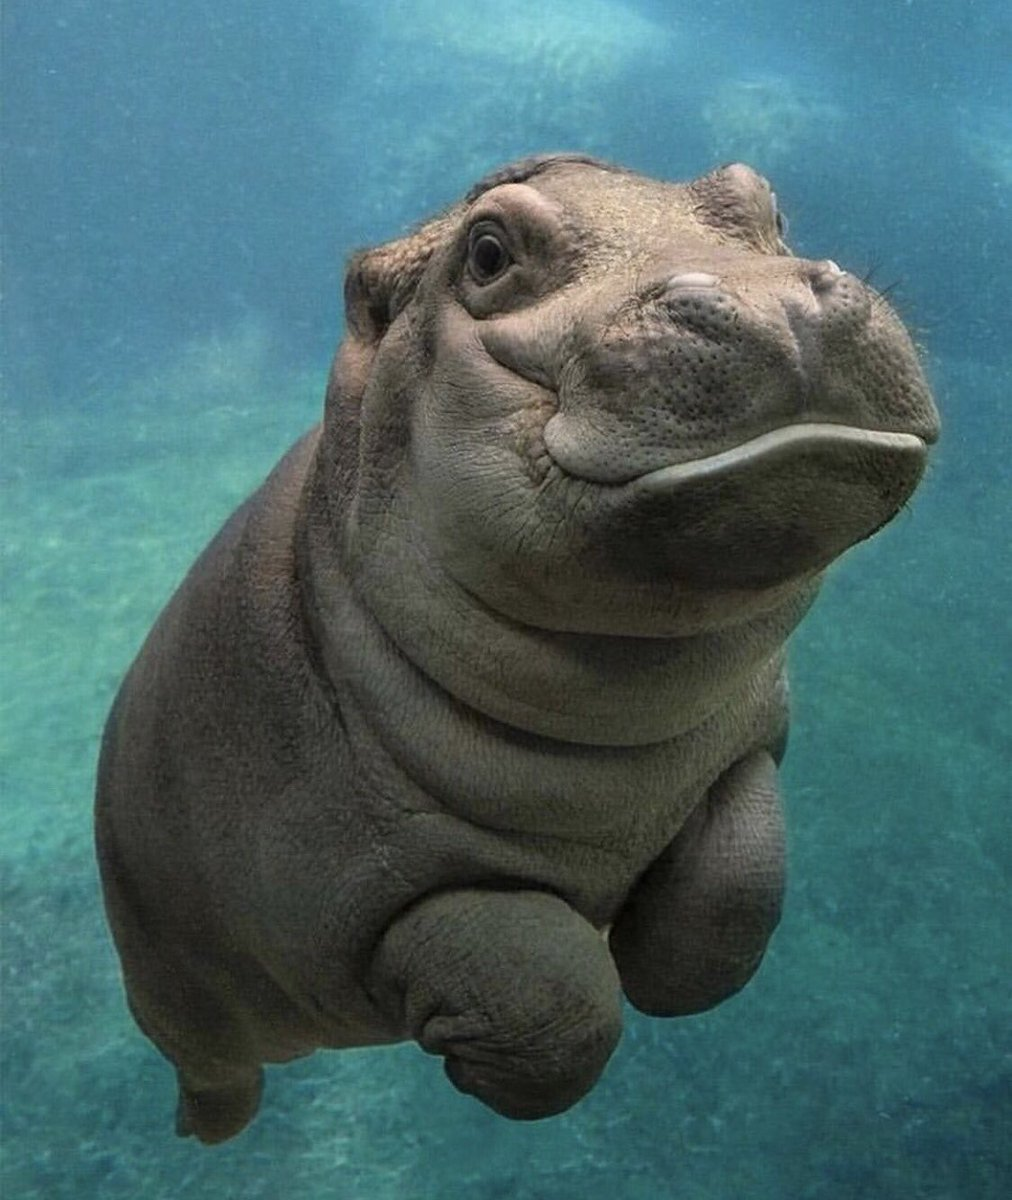 This is what a baby hippo looks like in case you didn't know